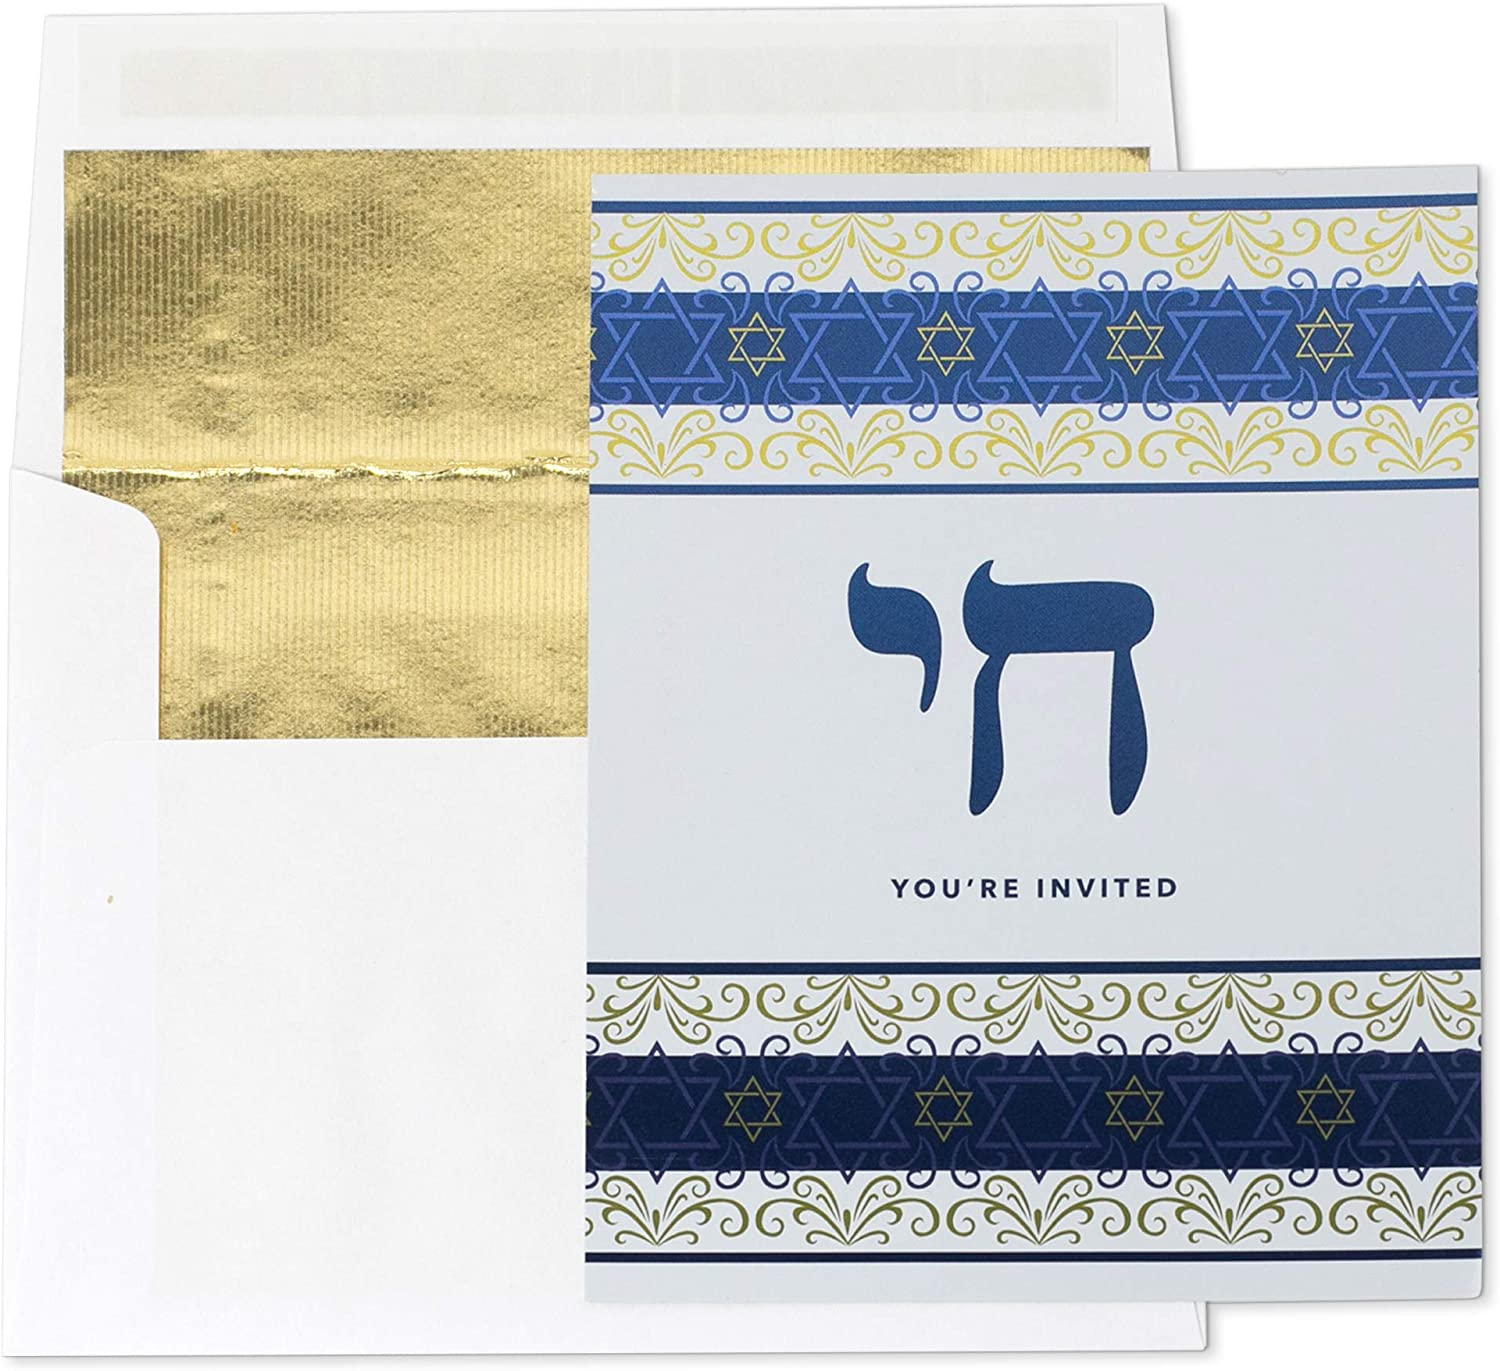 Clearstory Bar/Bat Mitzvah Party Invitation Cards with Gold Foiled Lined Envelopes, Features Star of David and Blue and Gold Foil Design Printed in Front (4.5 x 5 Inches Each, Pack of 8)